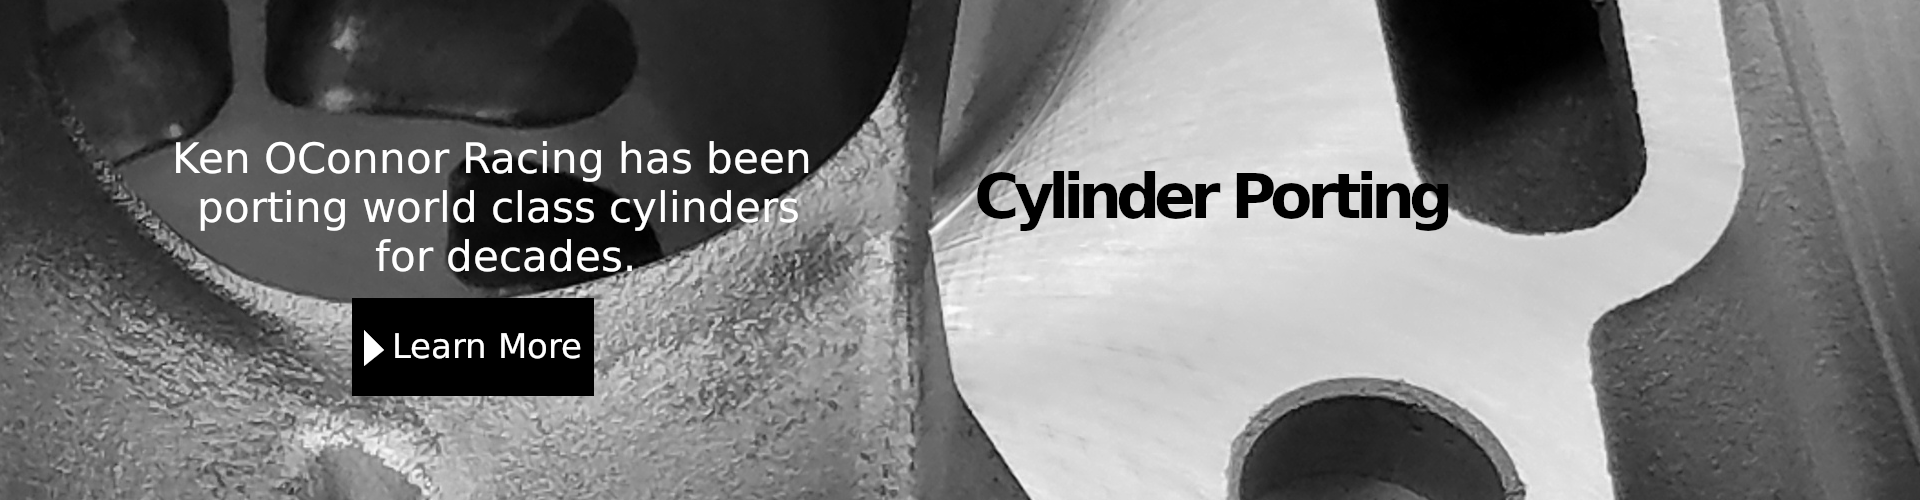 Cylinder Porting